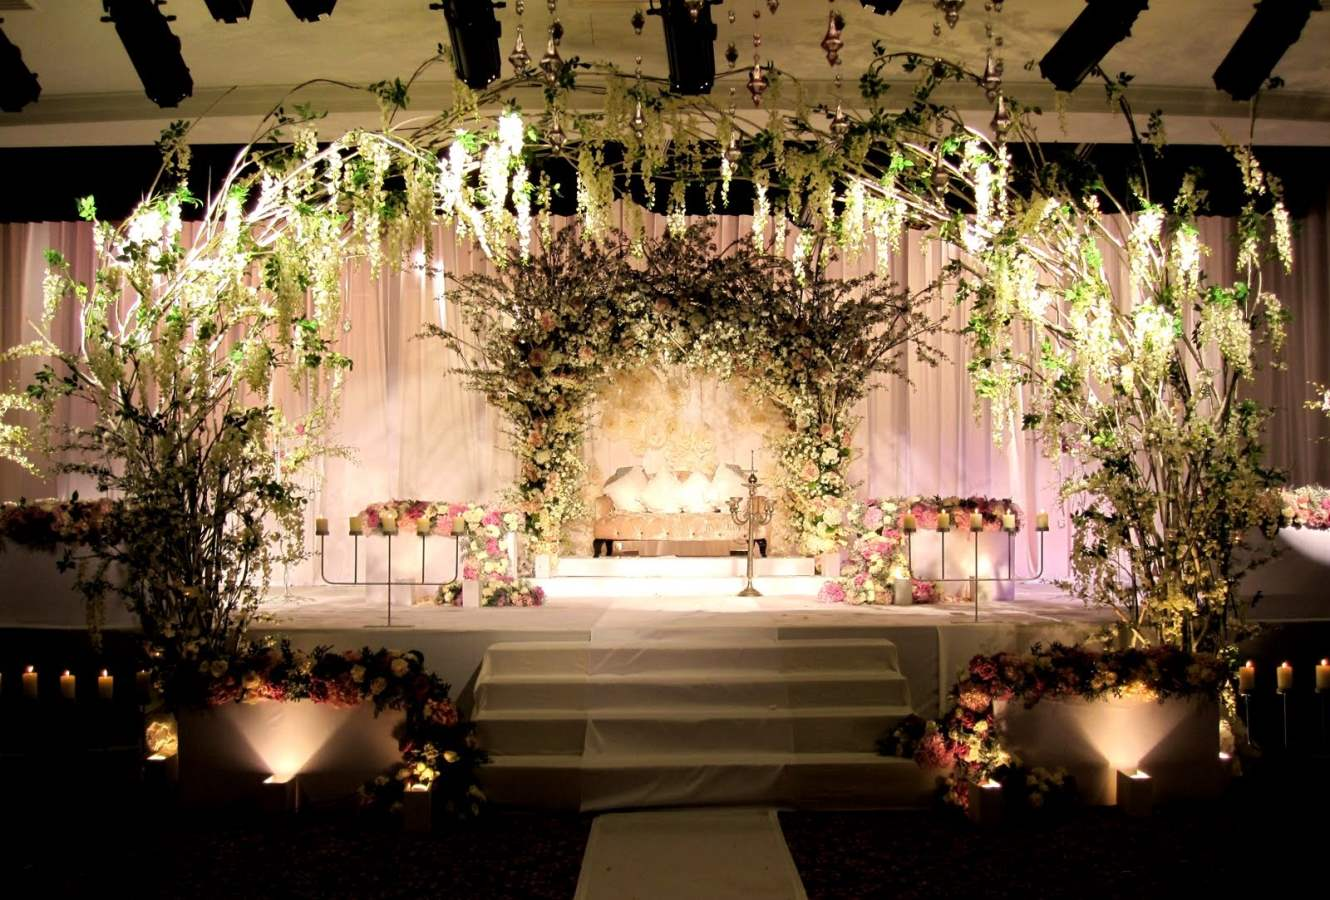 Indian wedding decoration ideas important 5 factor to consider page 4 - Flower wedding decoration ...